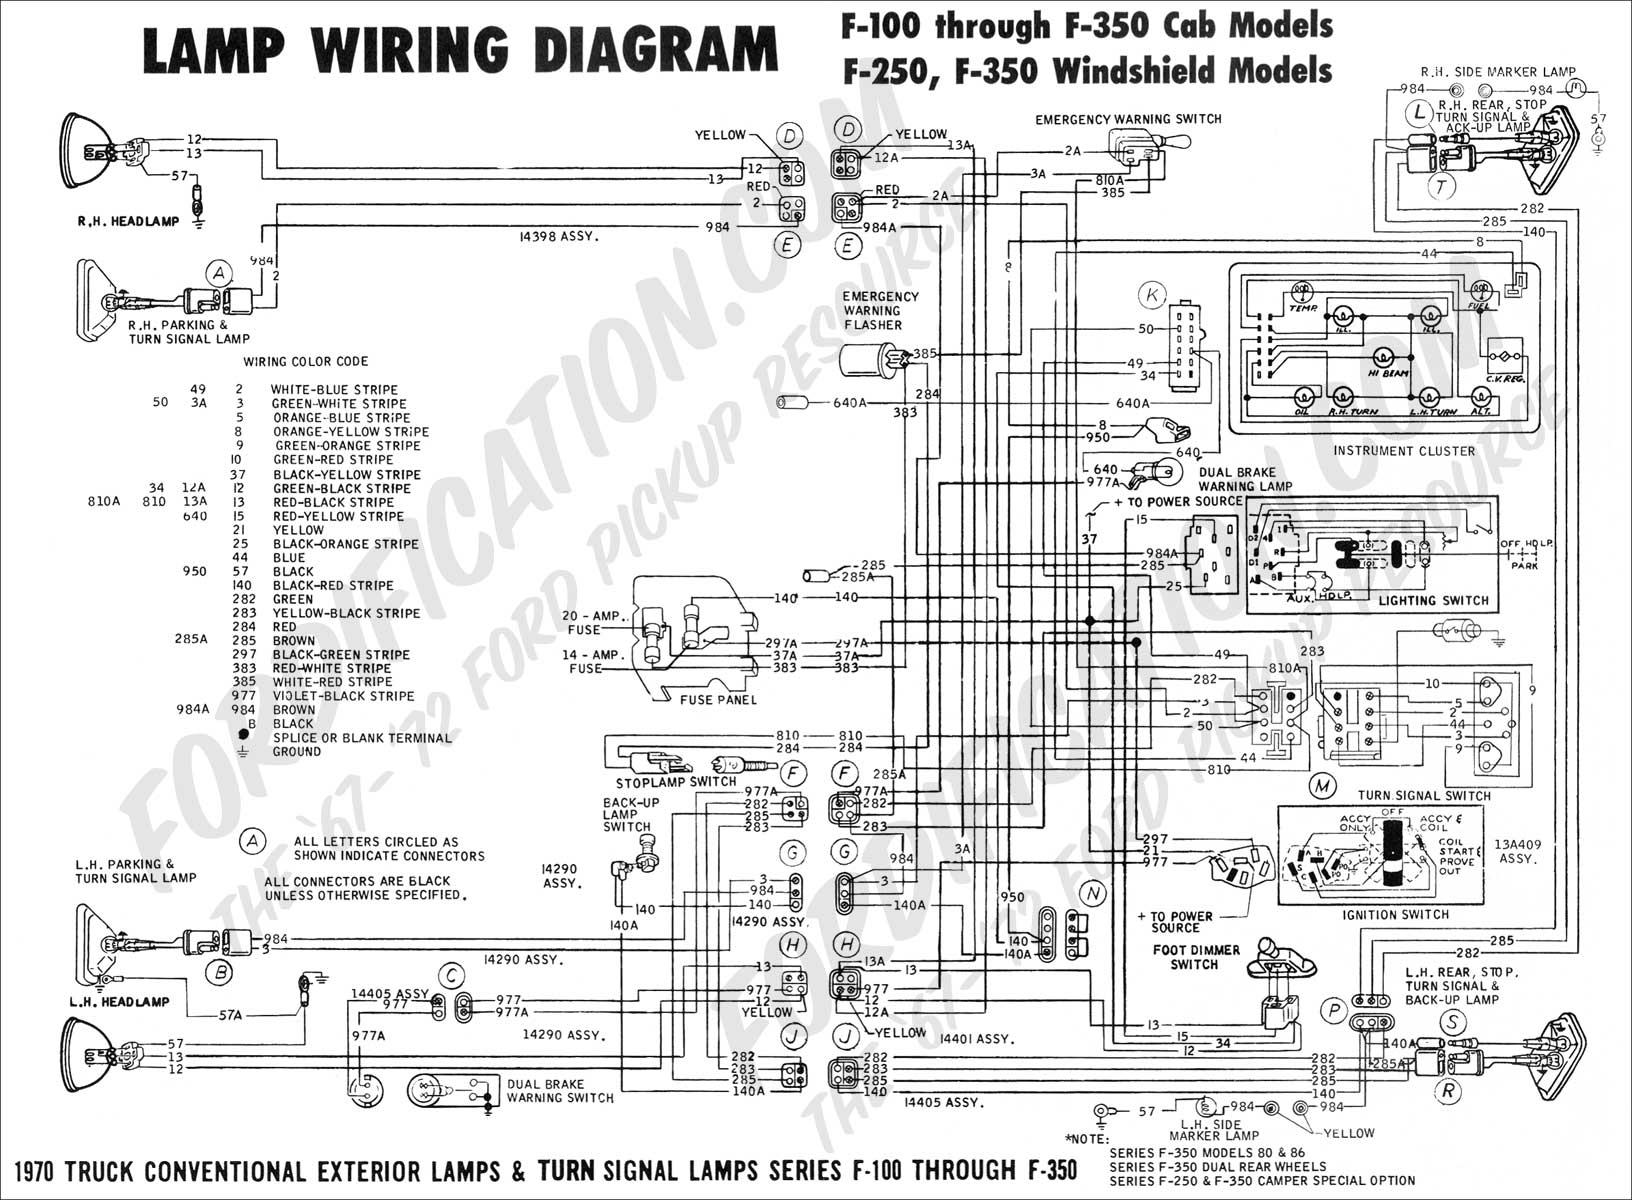 wiring diagram_70ext lights01?resize\\\\\\d665%2C489 1993 ford ranger wiring diagram efcaviation com 2016 ford explorer wiring diagram at aneh.co